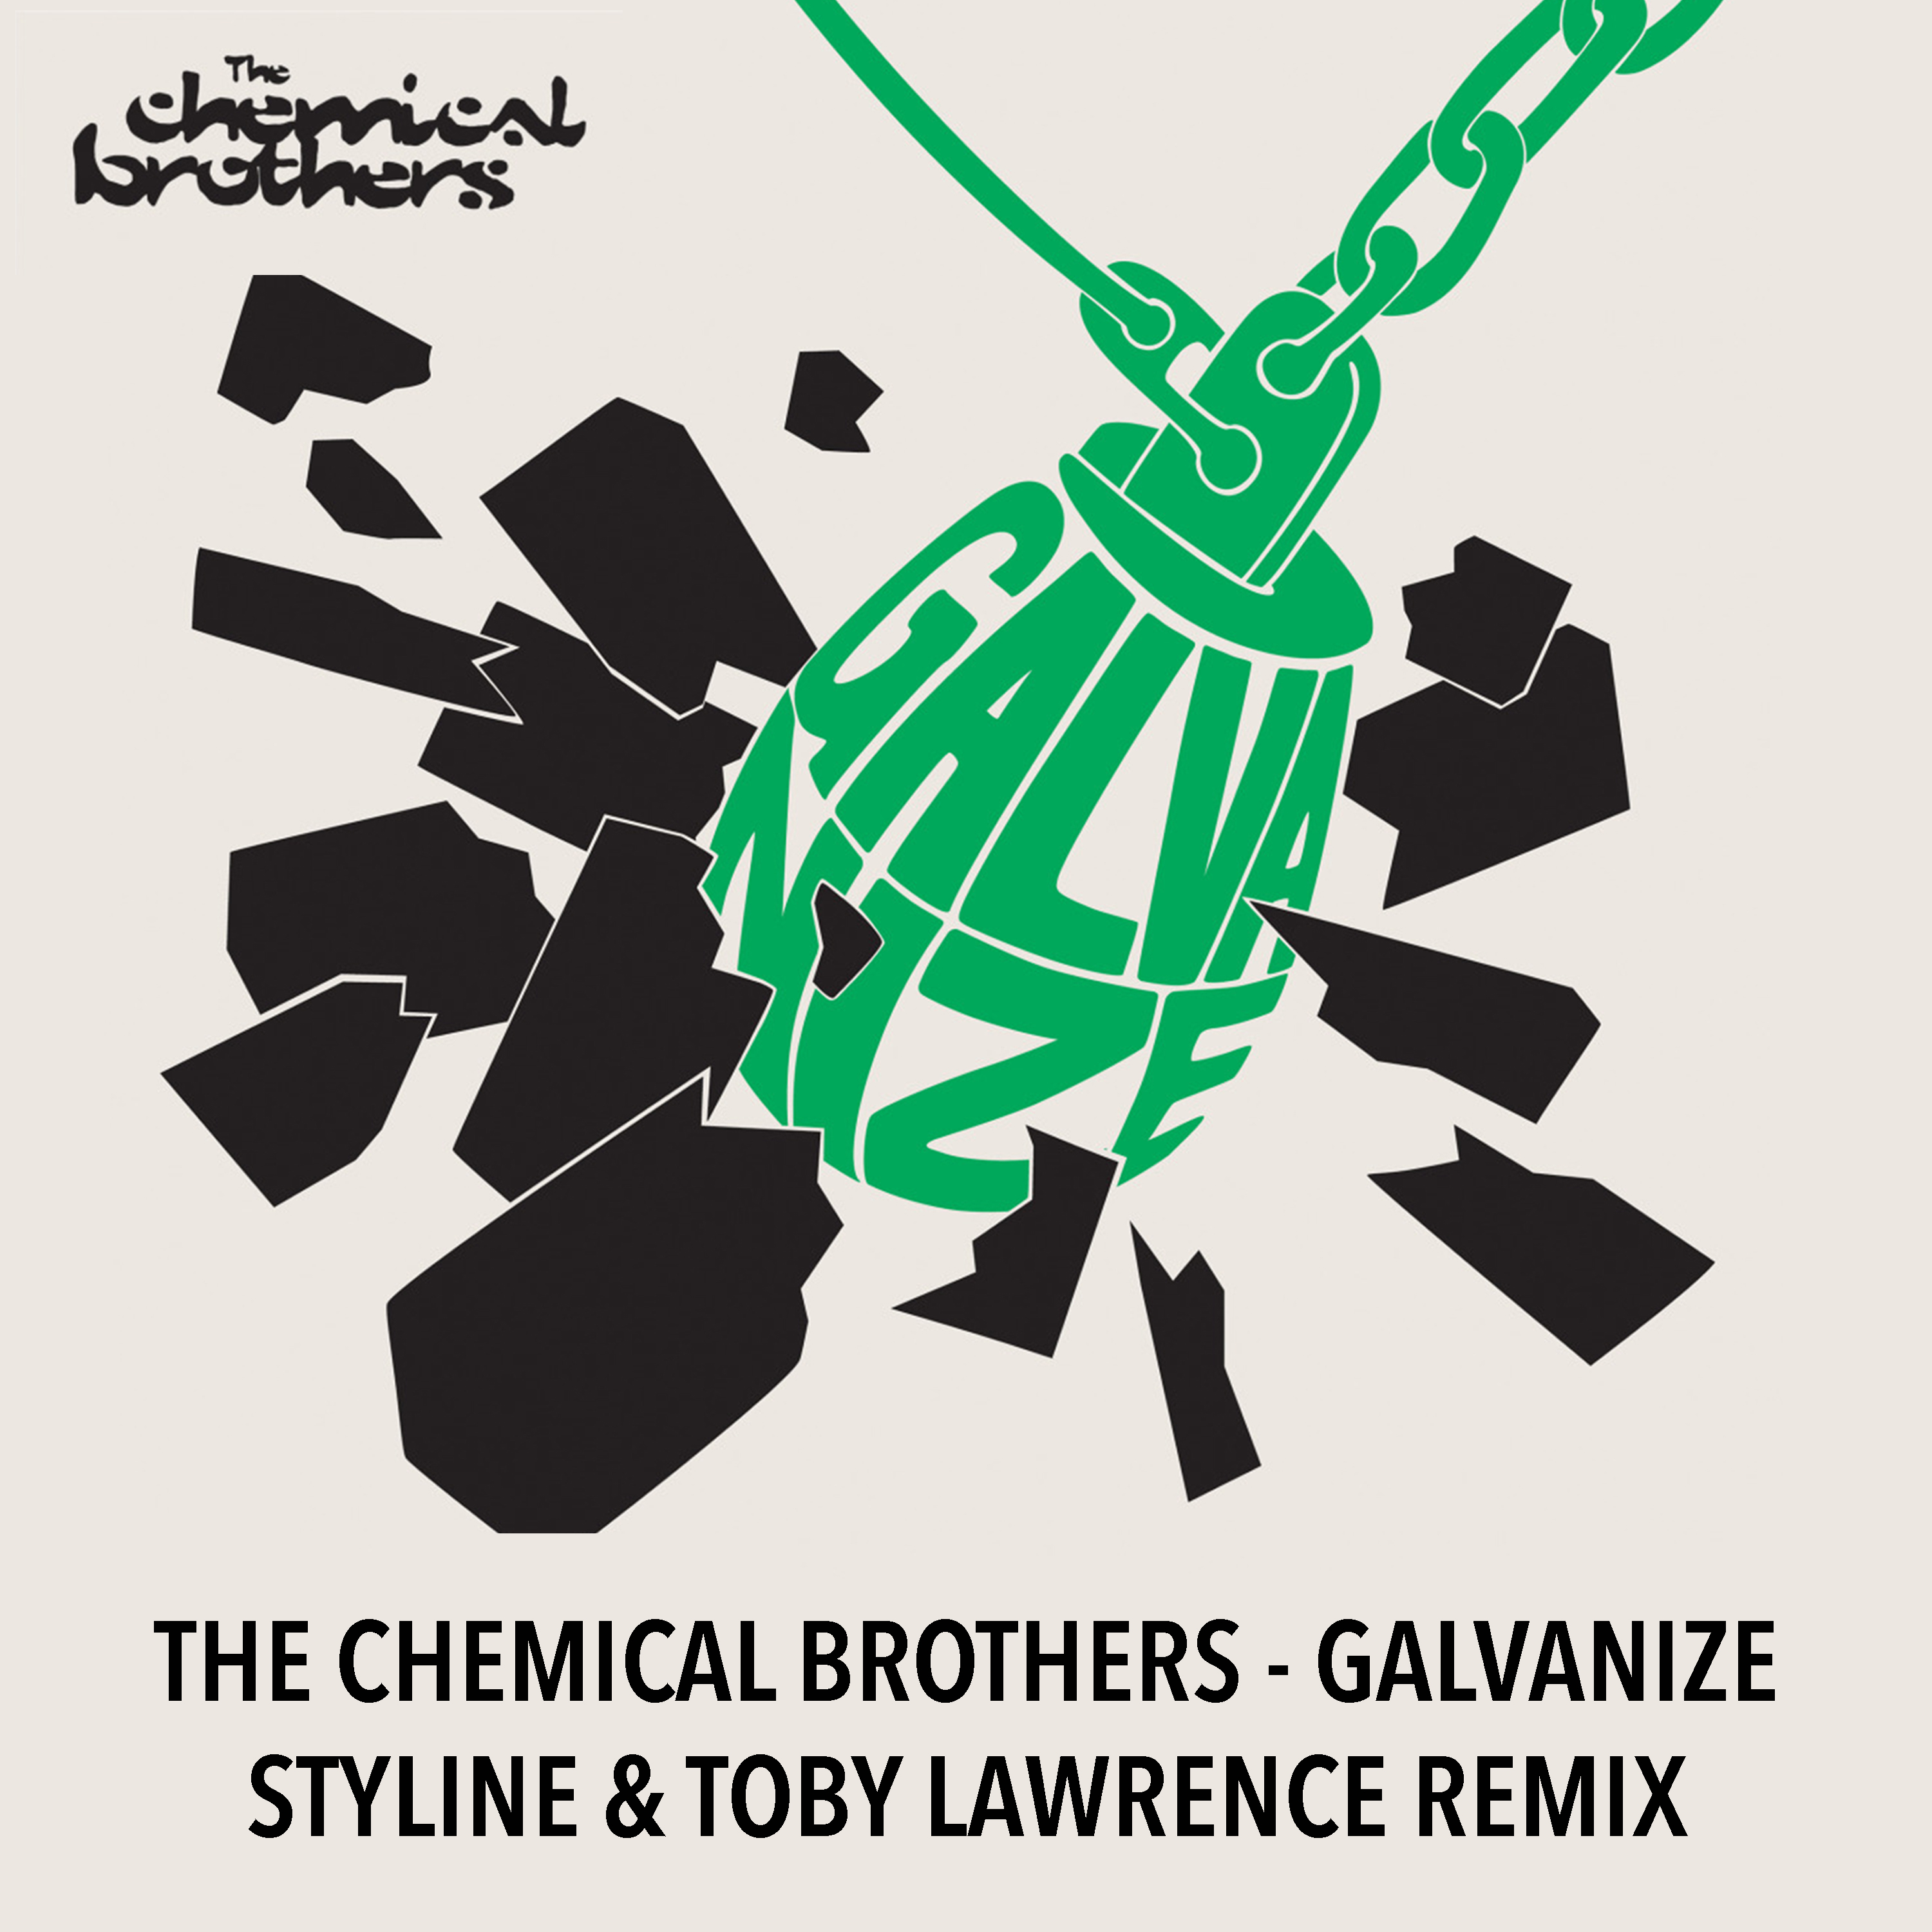 The Chemical Brothers - Galvanize (Styline & Toby Lawrence Remix)